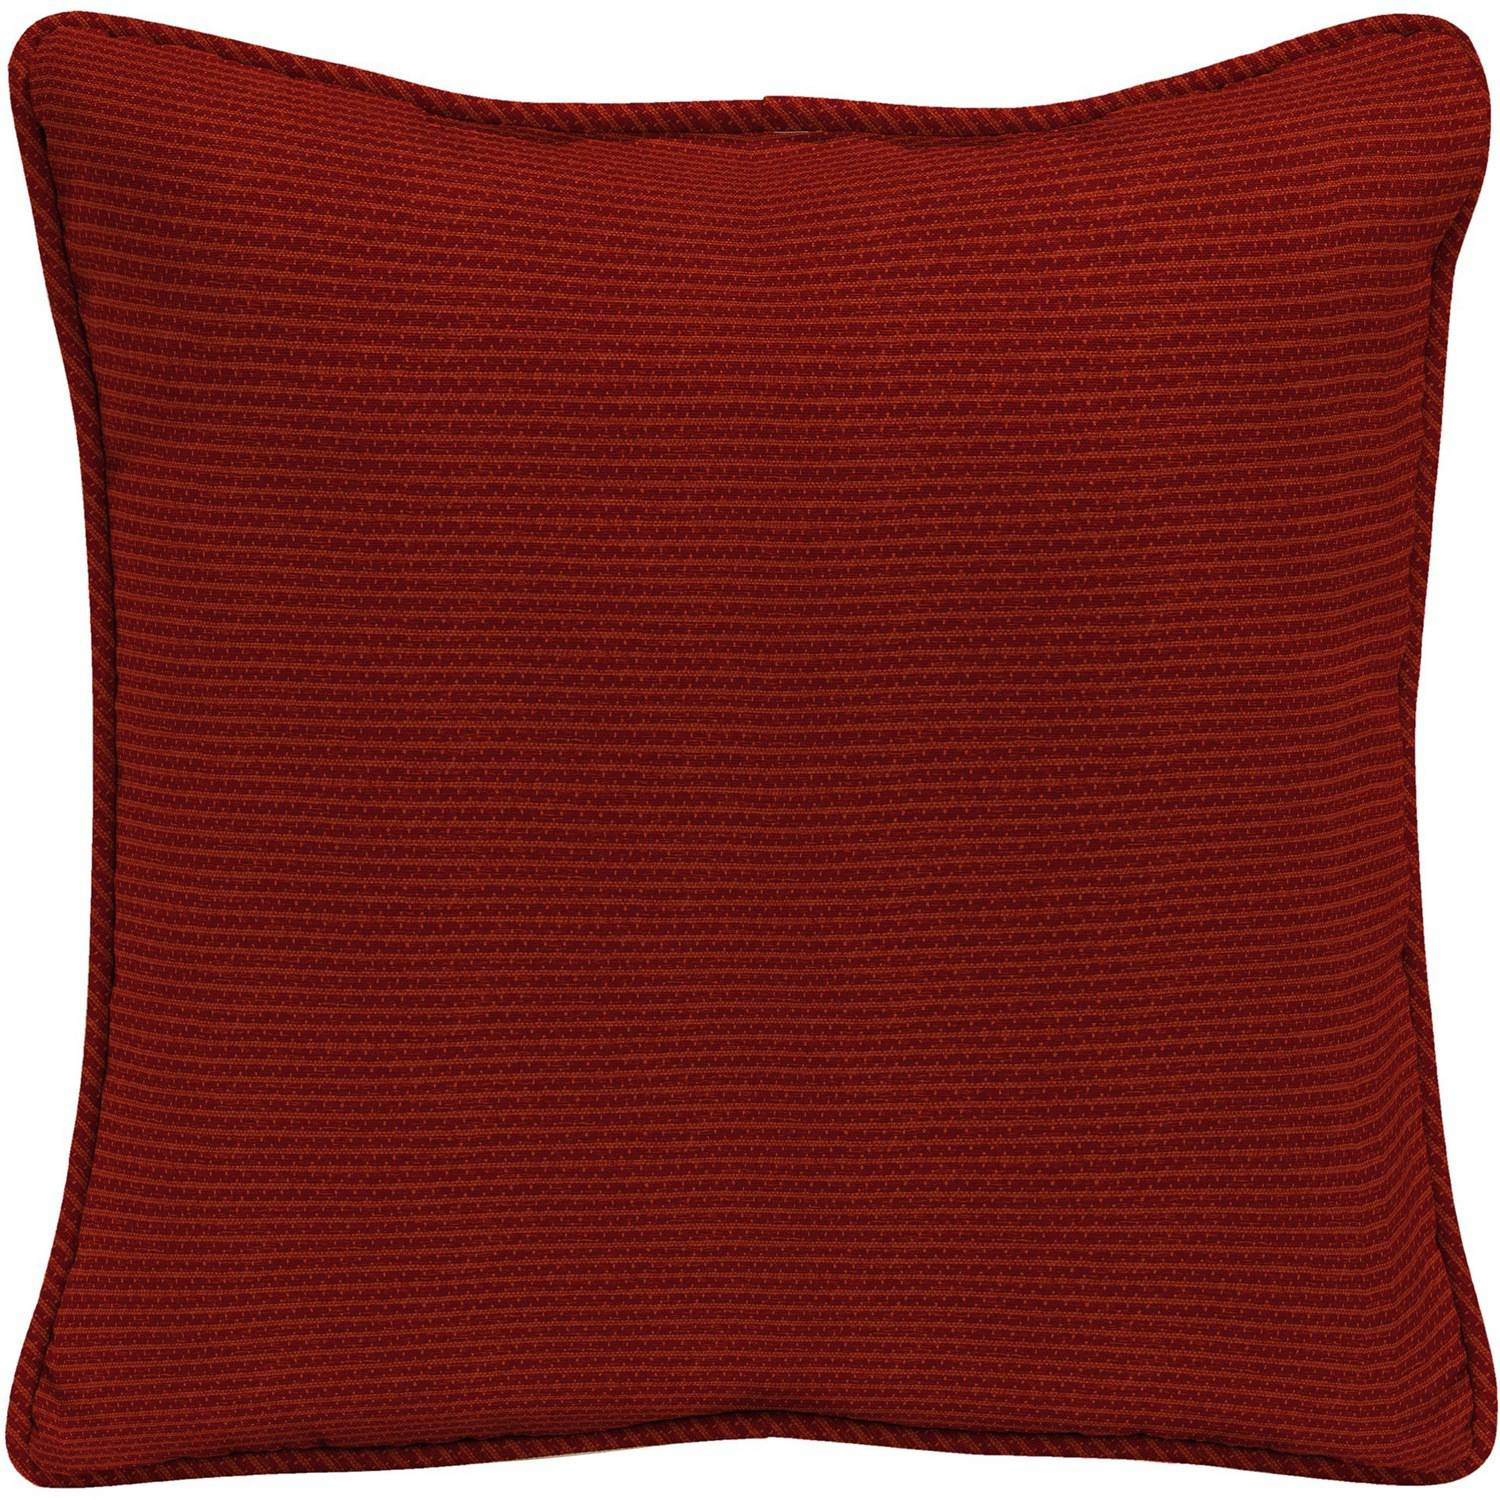 "Arden Outdoors 18"" Square Pillow With Welt, Red Rib Woven"